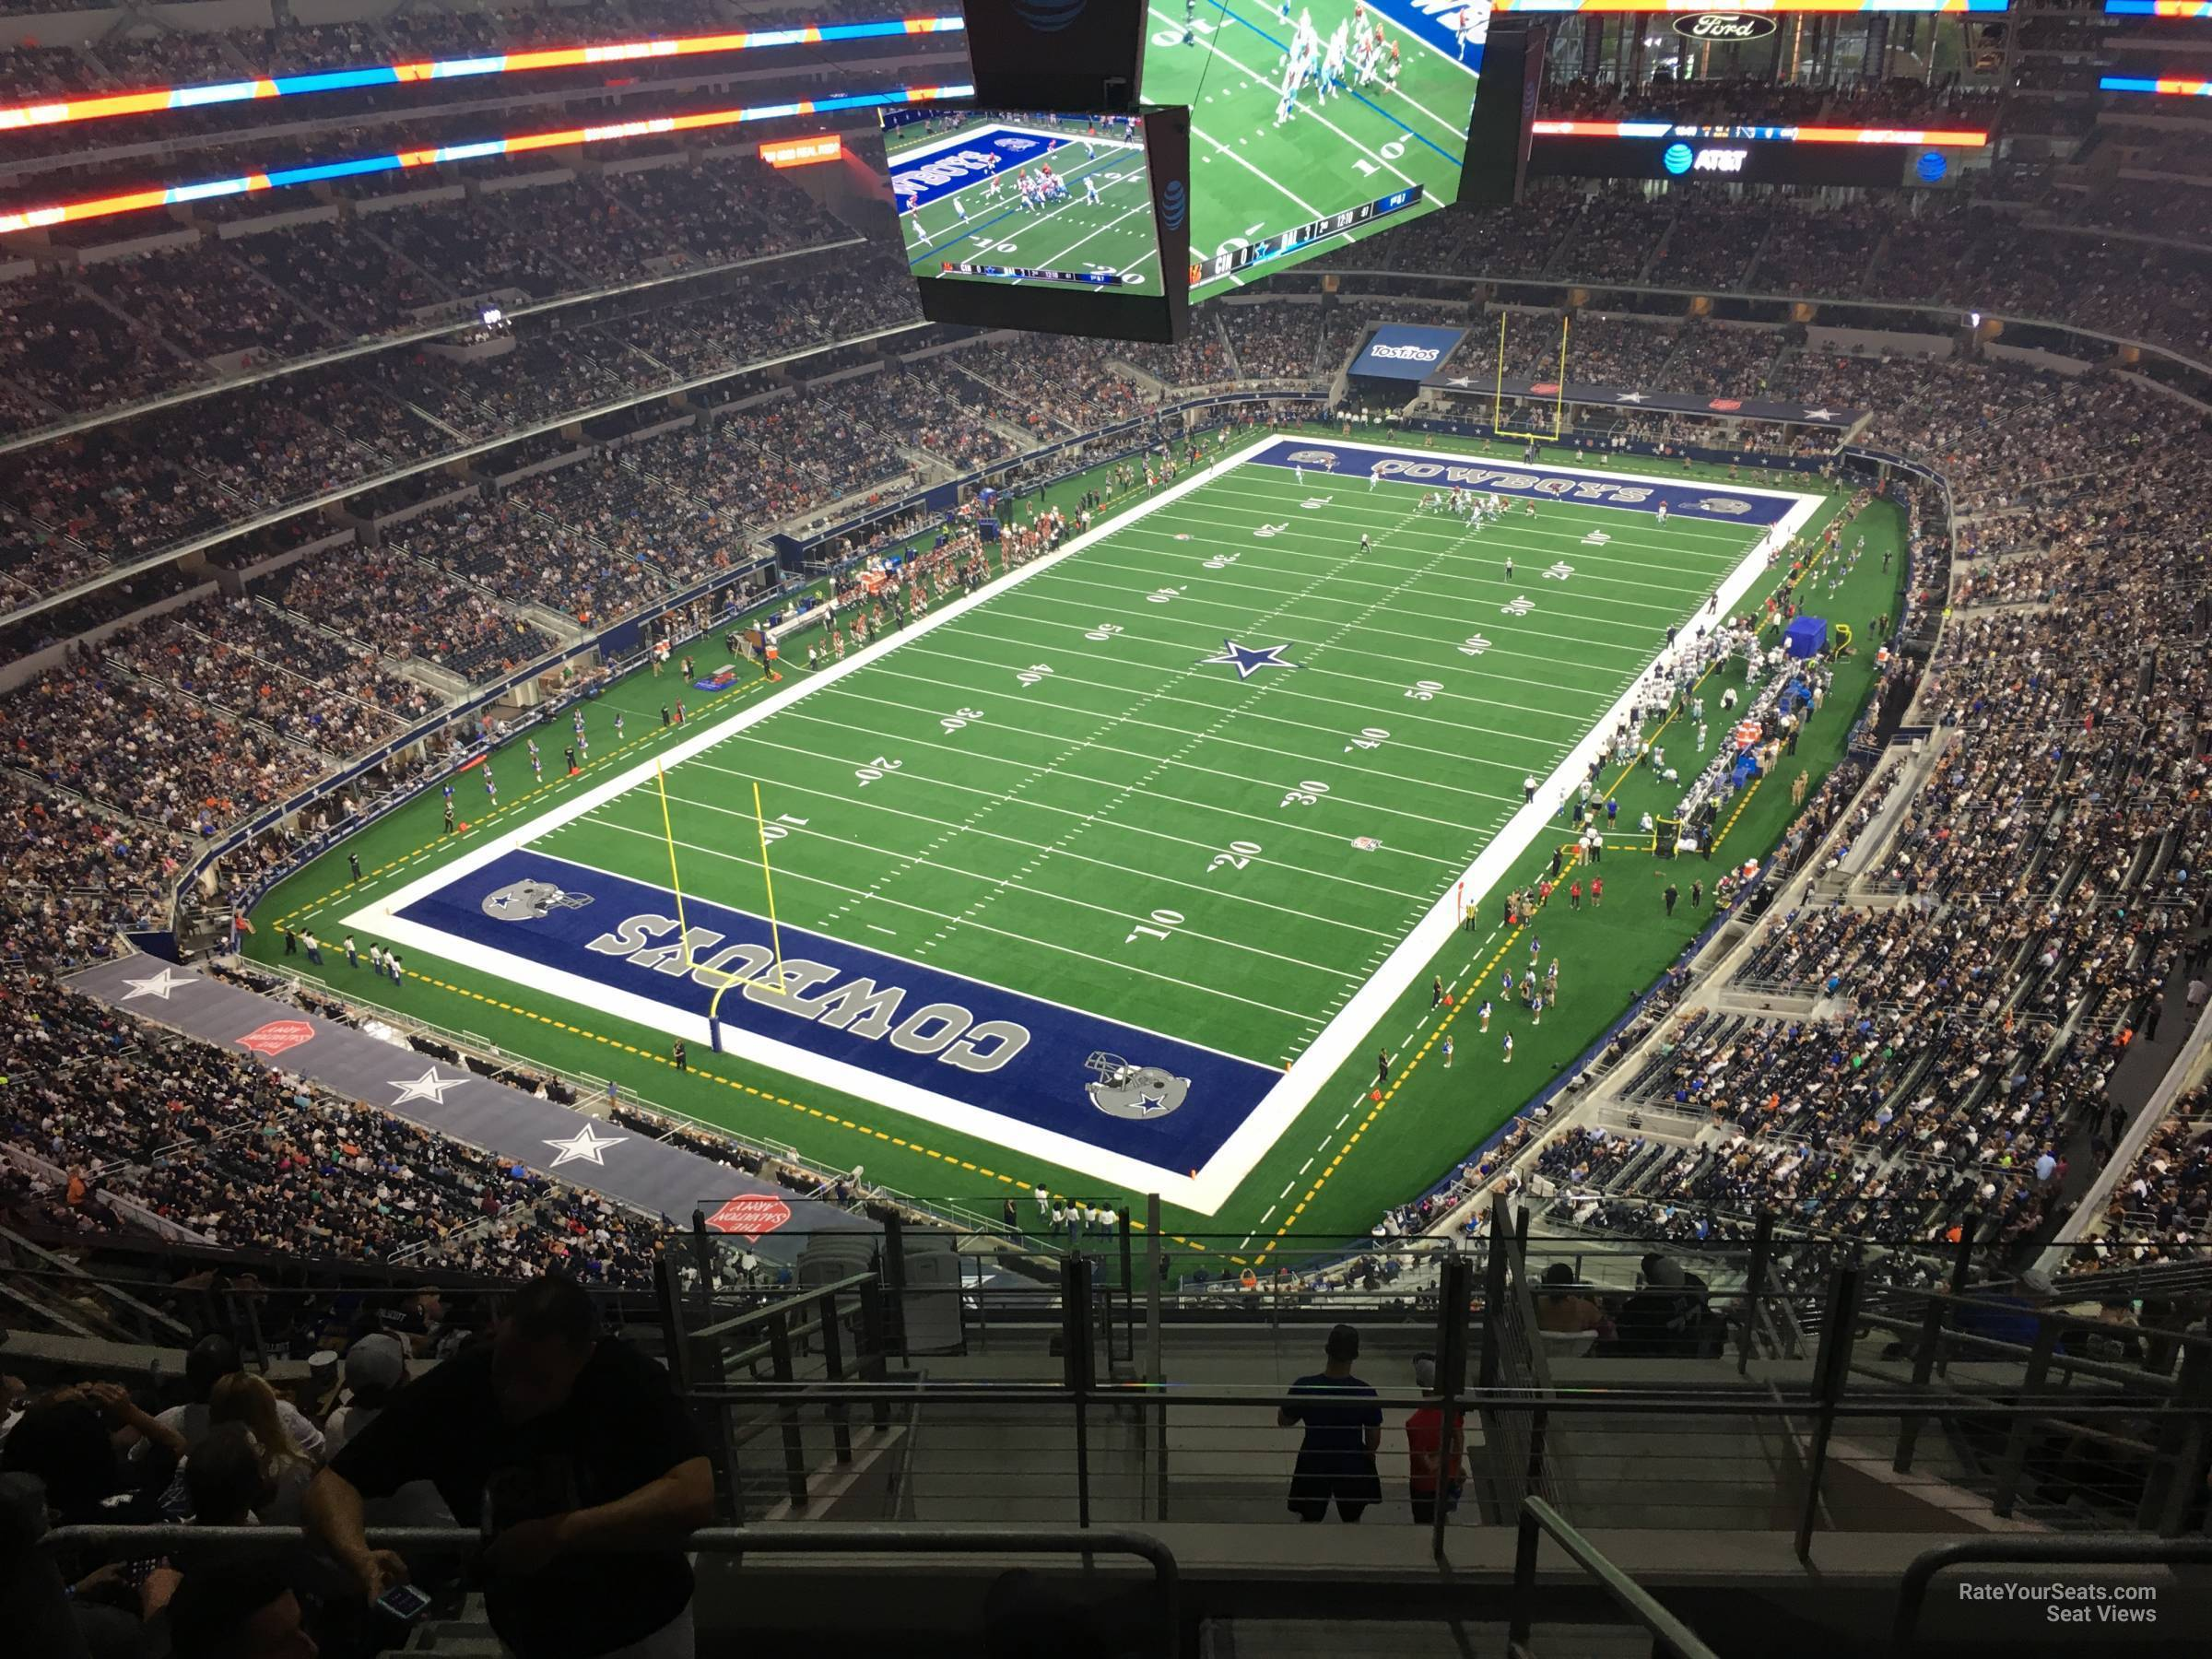 View of AT&T Stadium from section 424